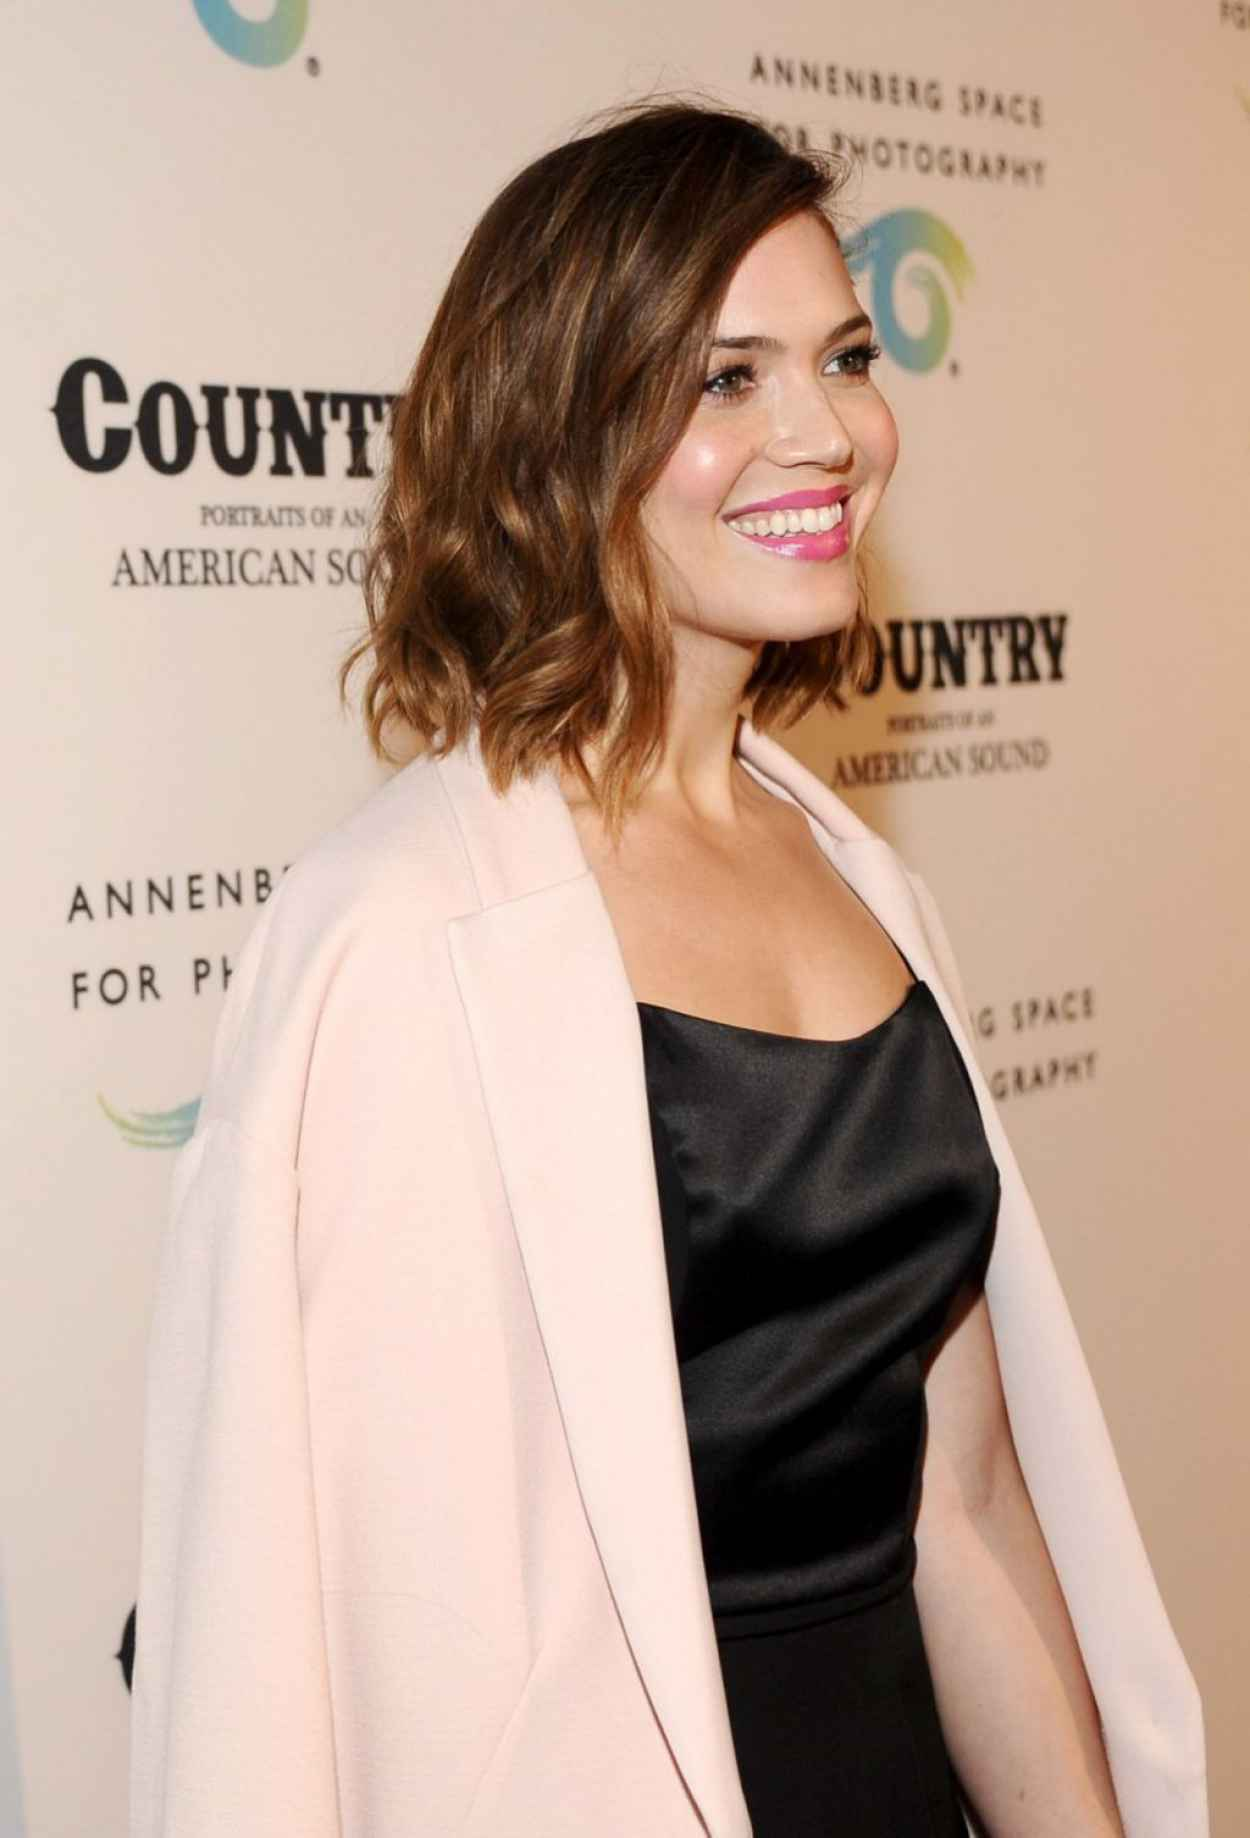 Mandy Moore - Country: Portraits Of An American Sound Opening in Century City - May 2015-1